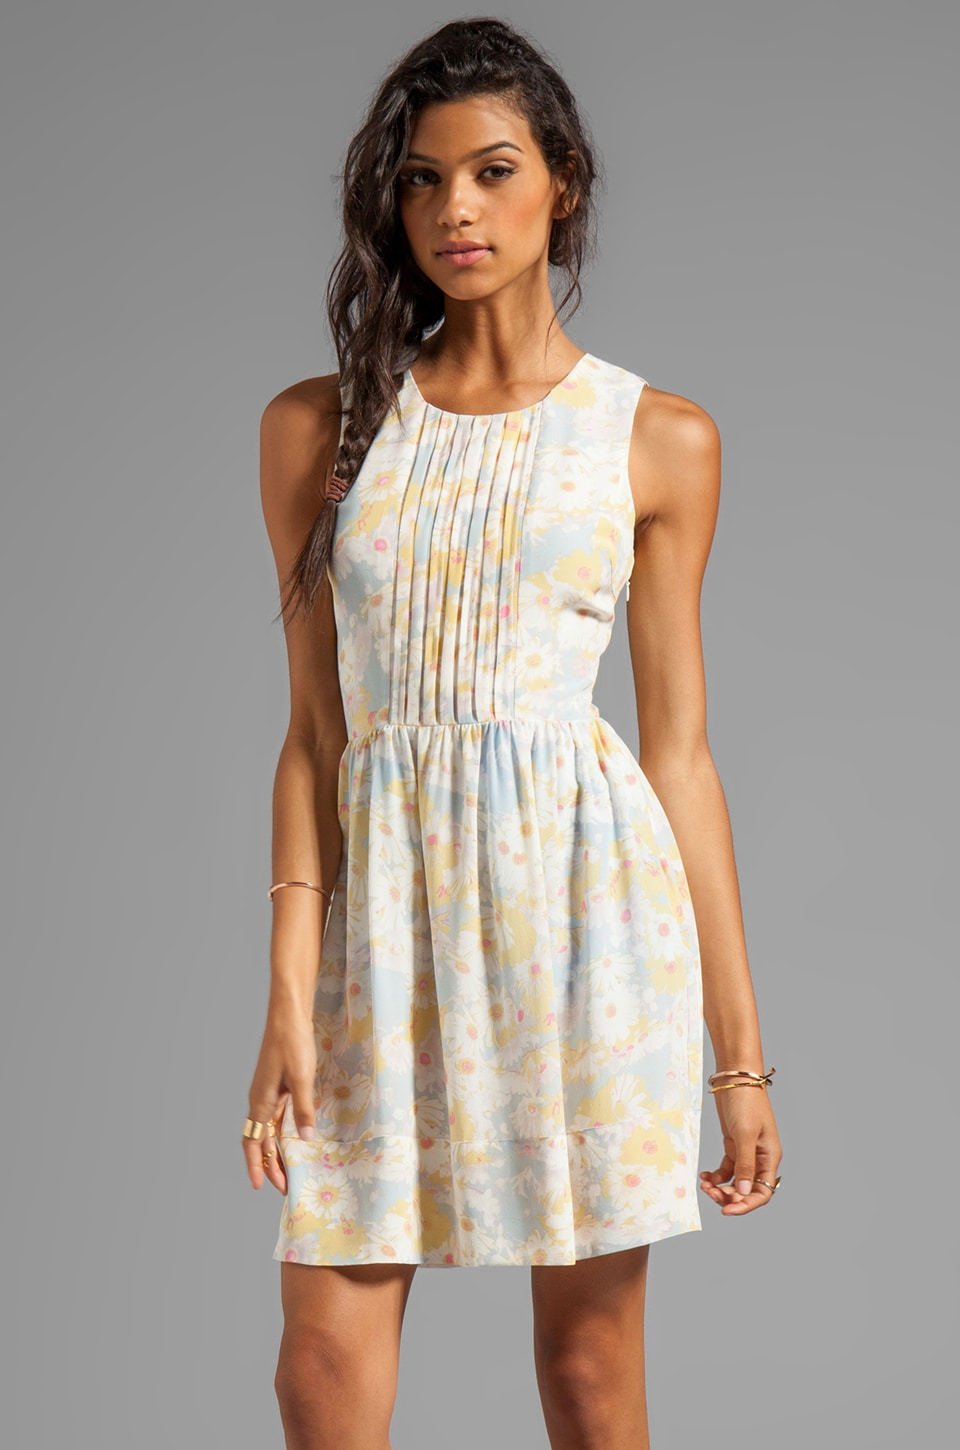 harlyn Pleated Dress in Vintage Blue Floral